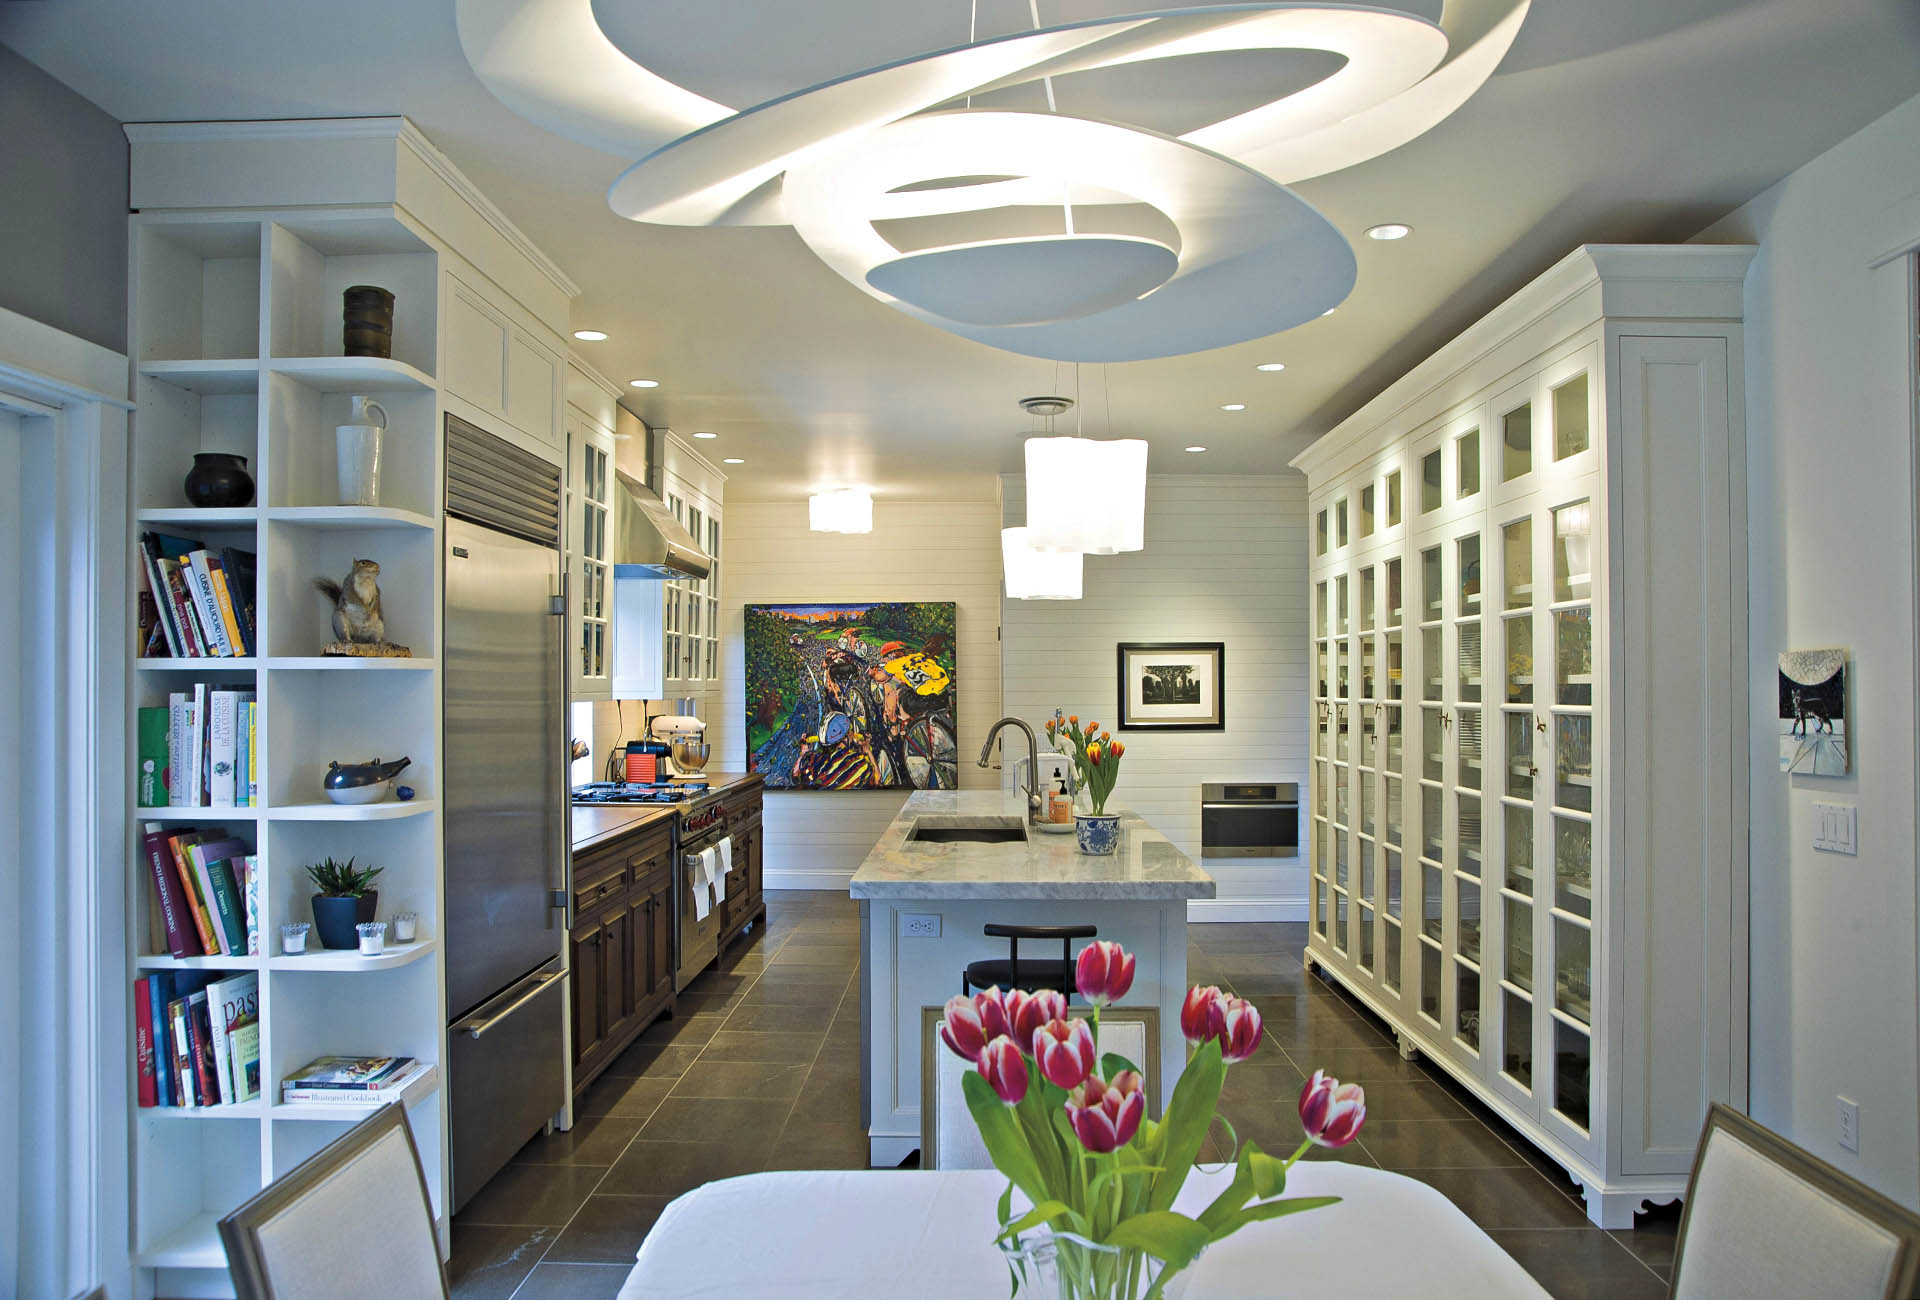 Foley Road white kitchen with Artimede lighting